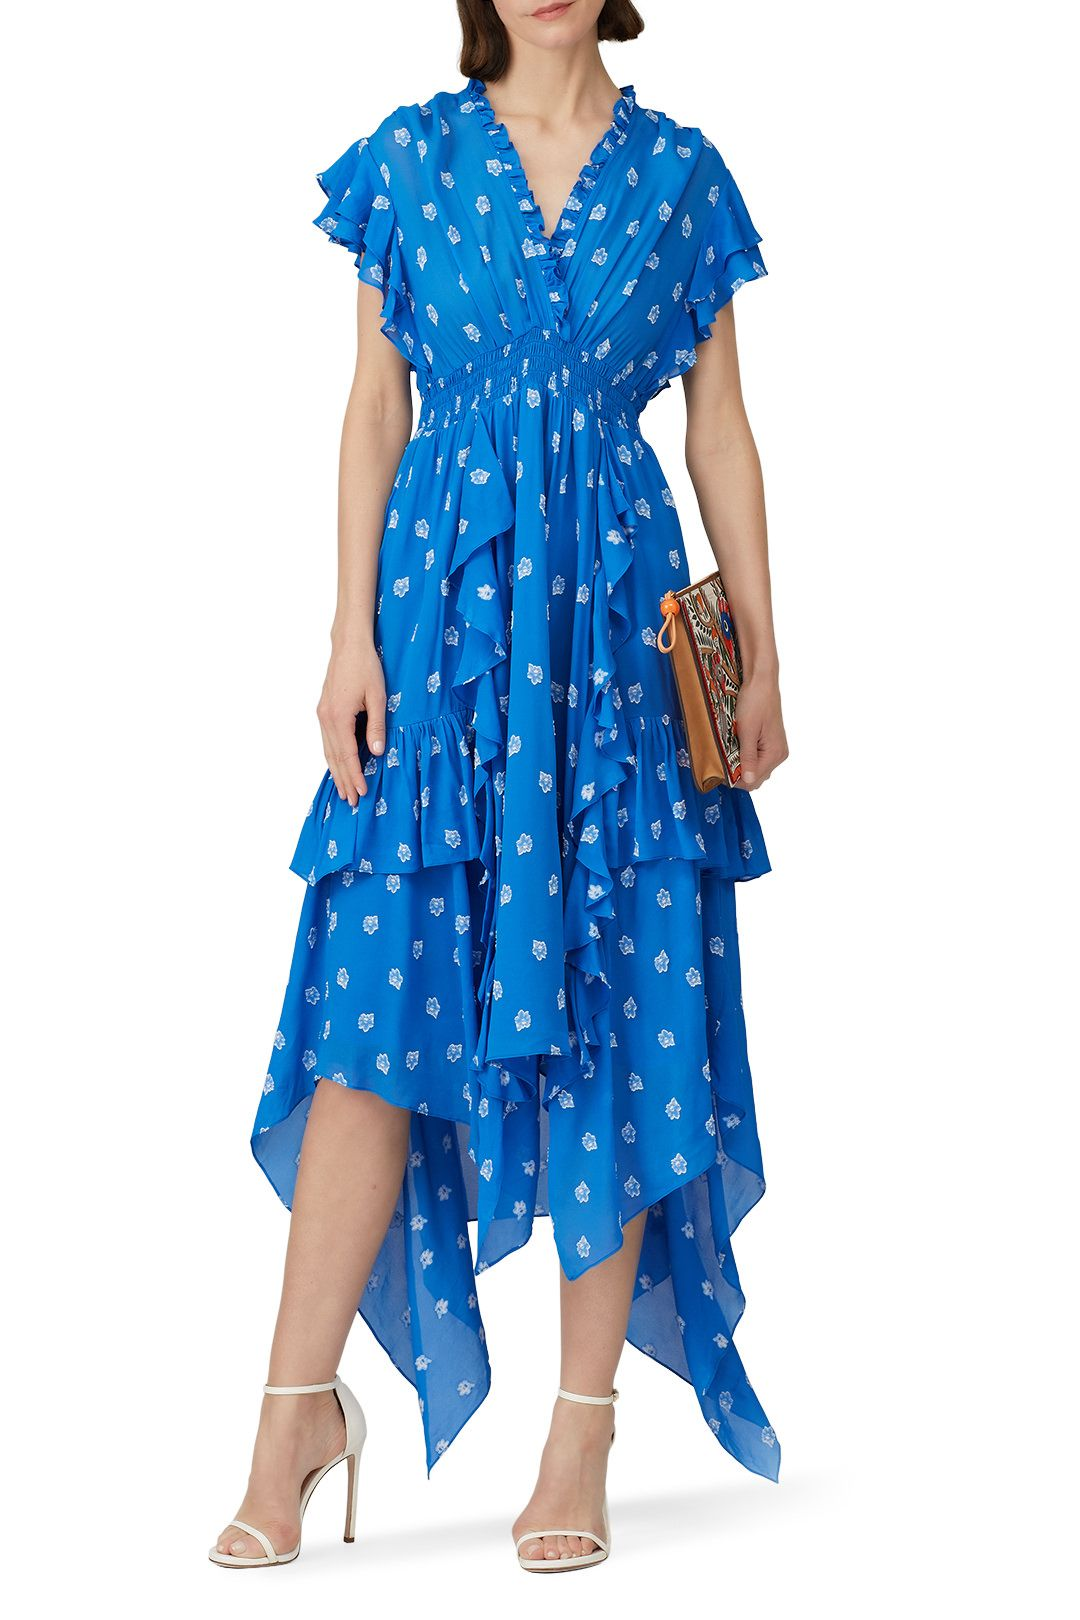 Rent Yasmine Tiered Floral Dress By Shoshanna For 60 Only At Rent The Runway Floral Dress Dresses Summer Day Dresses [ 1620 x 1080 Pixel ]